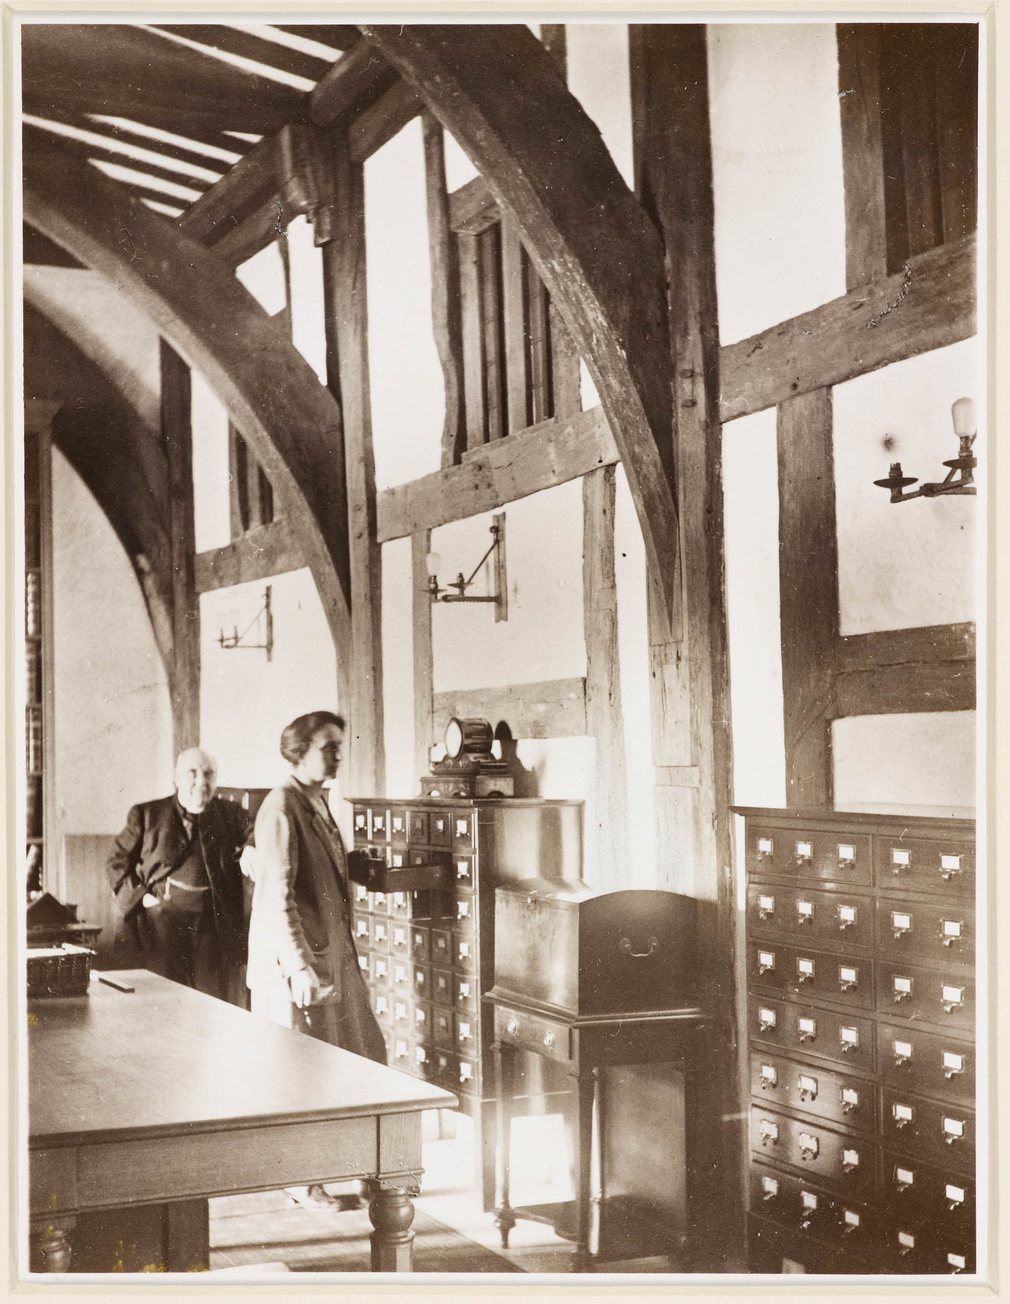 The Muniment Room, used by the Royal Archives in 1929